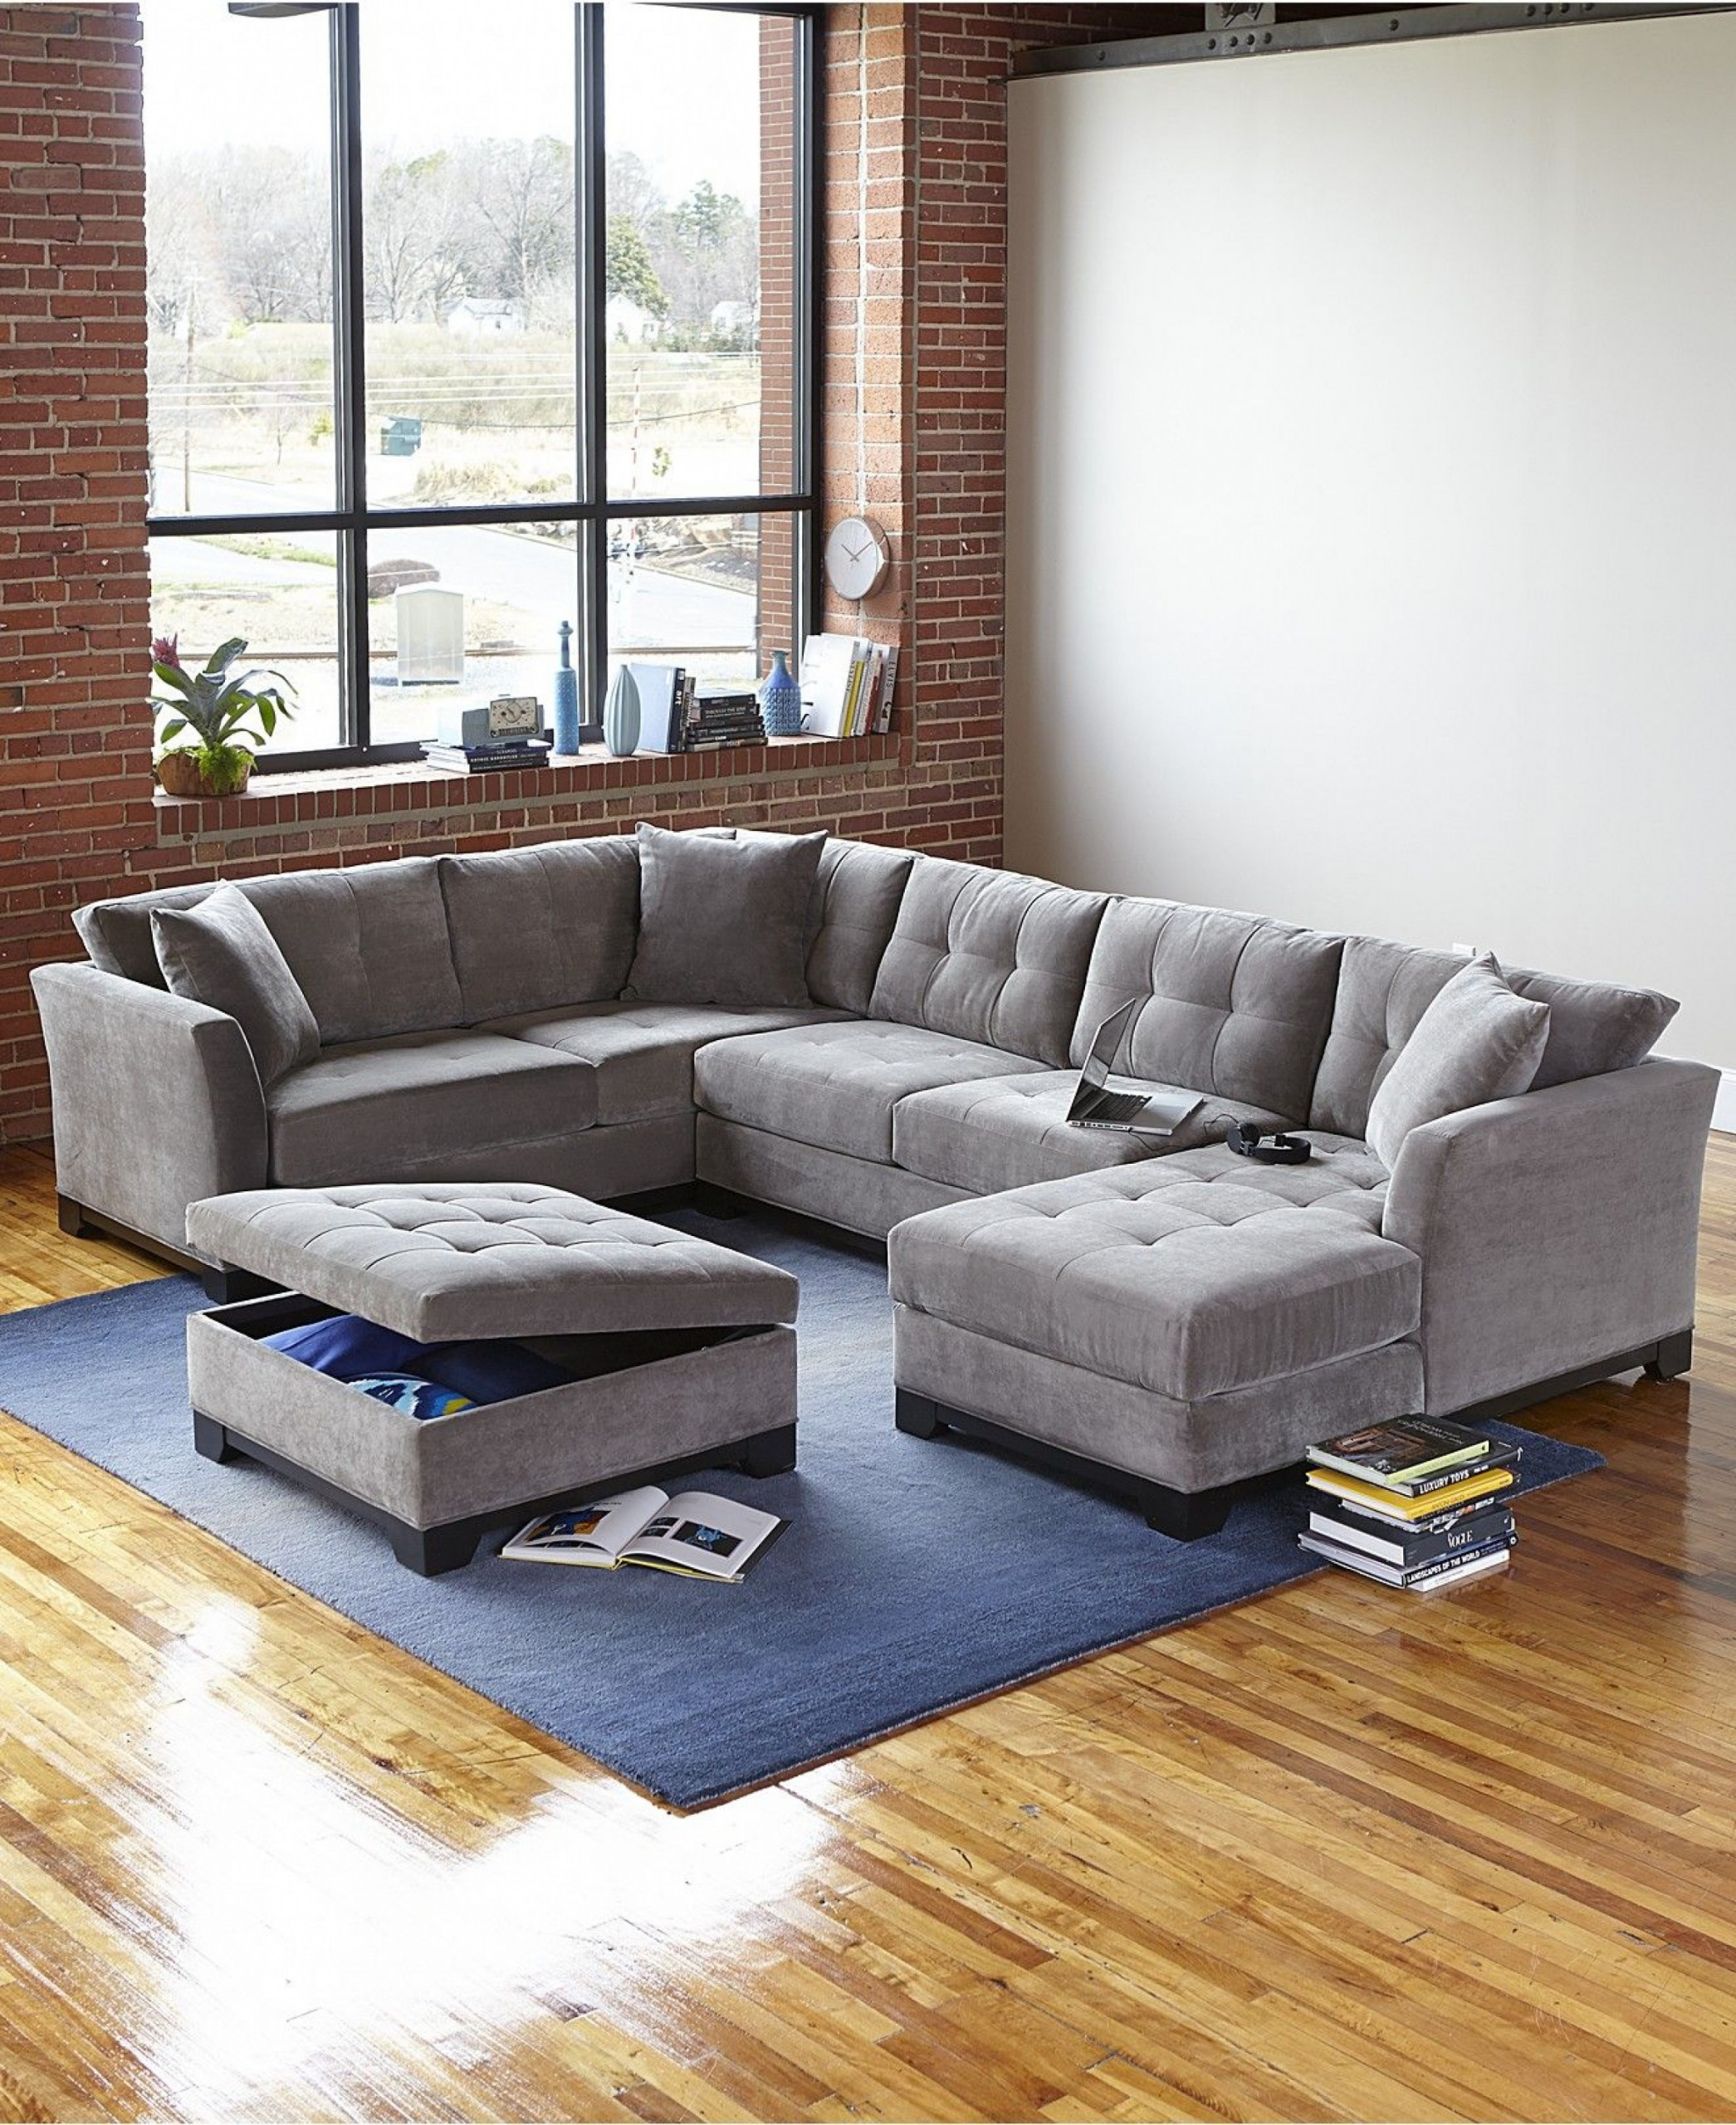 Picture of: Microfiber Sofa With Chaise Ideas On Foter